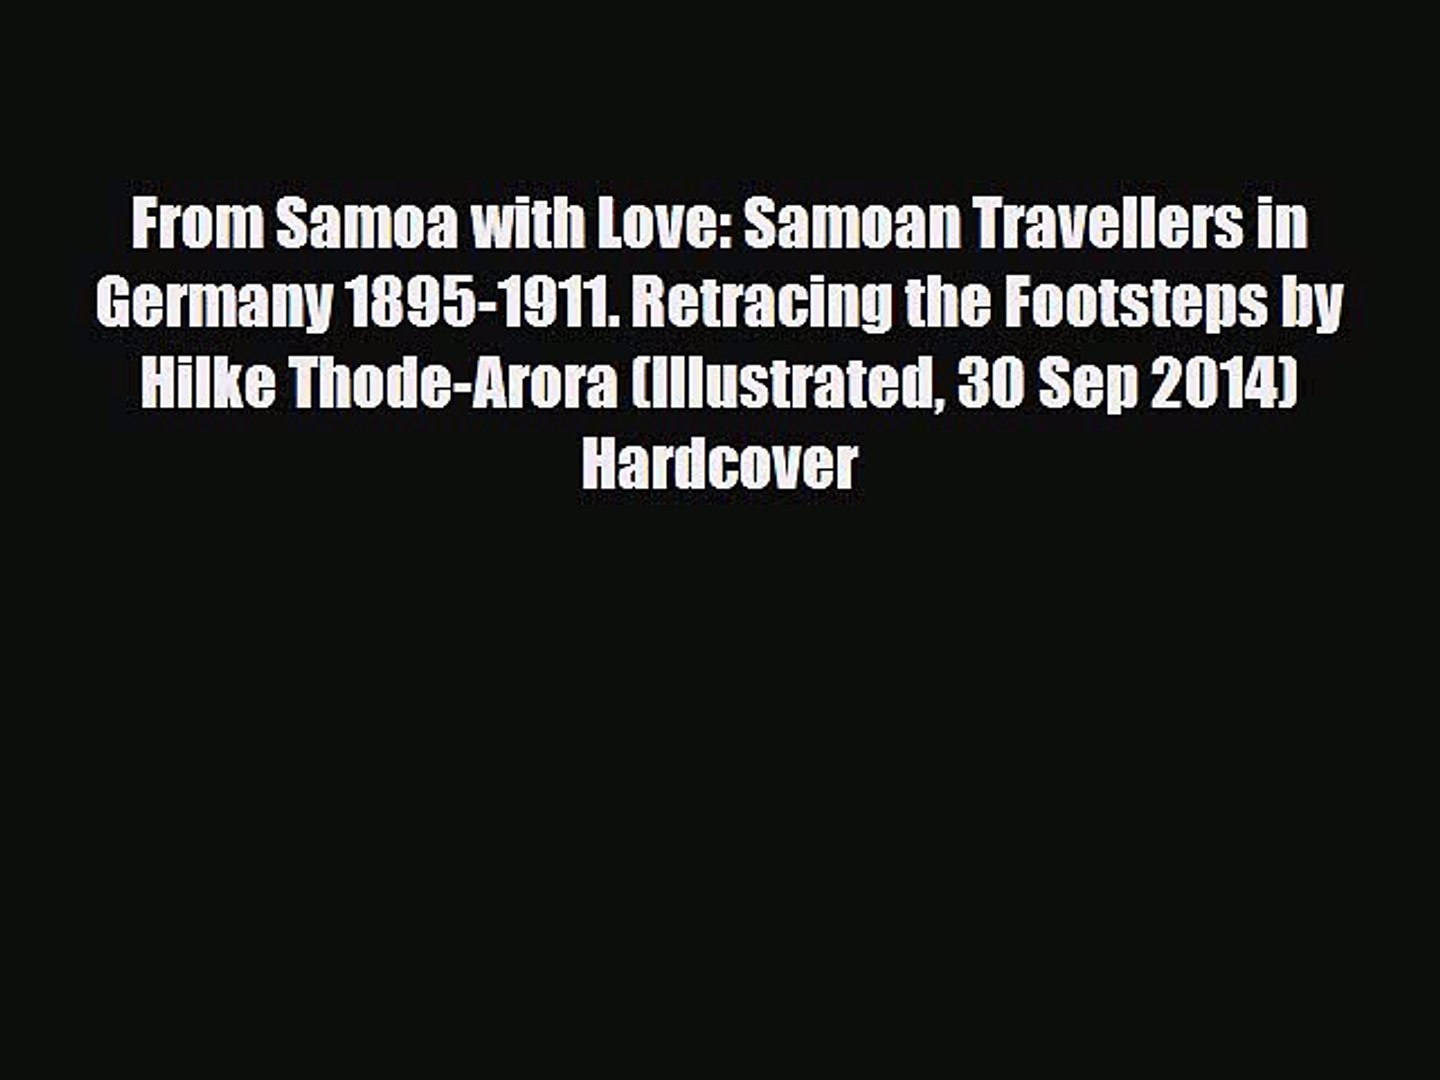 PDF From Samoa with Love: Samoan Travellers in Germany 1895-1911. Retracing the Footsteps by